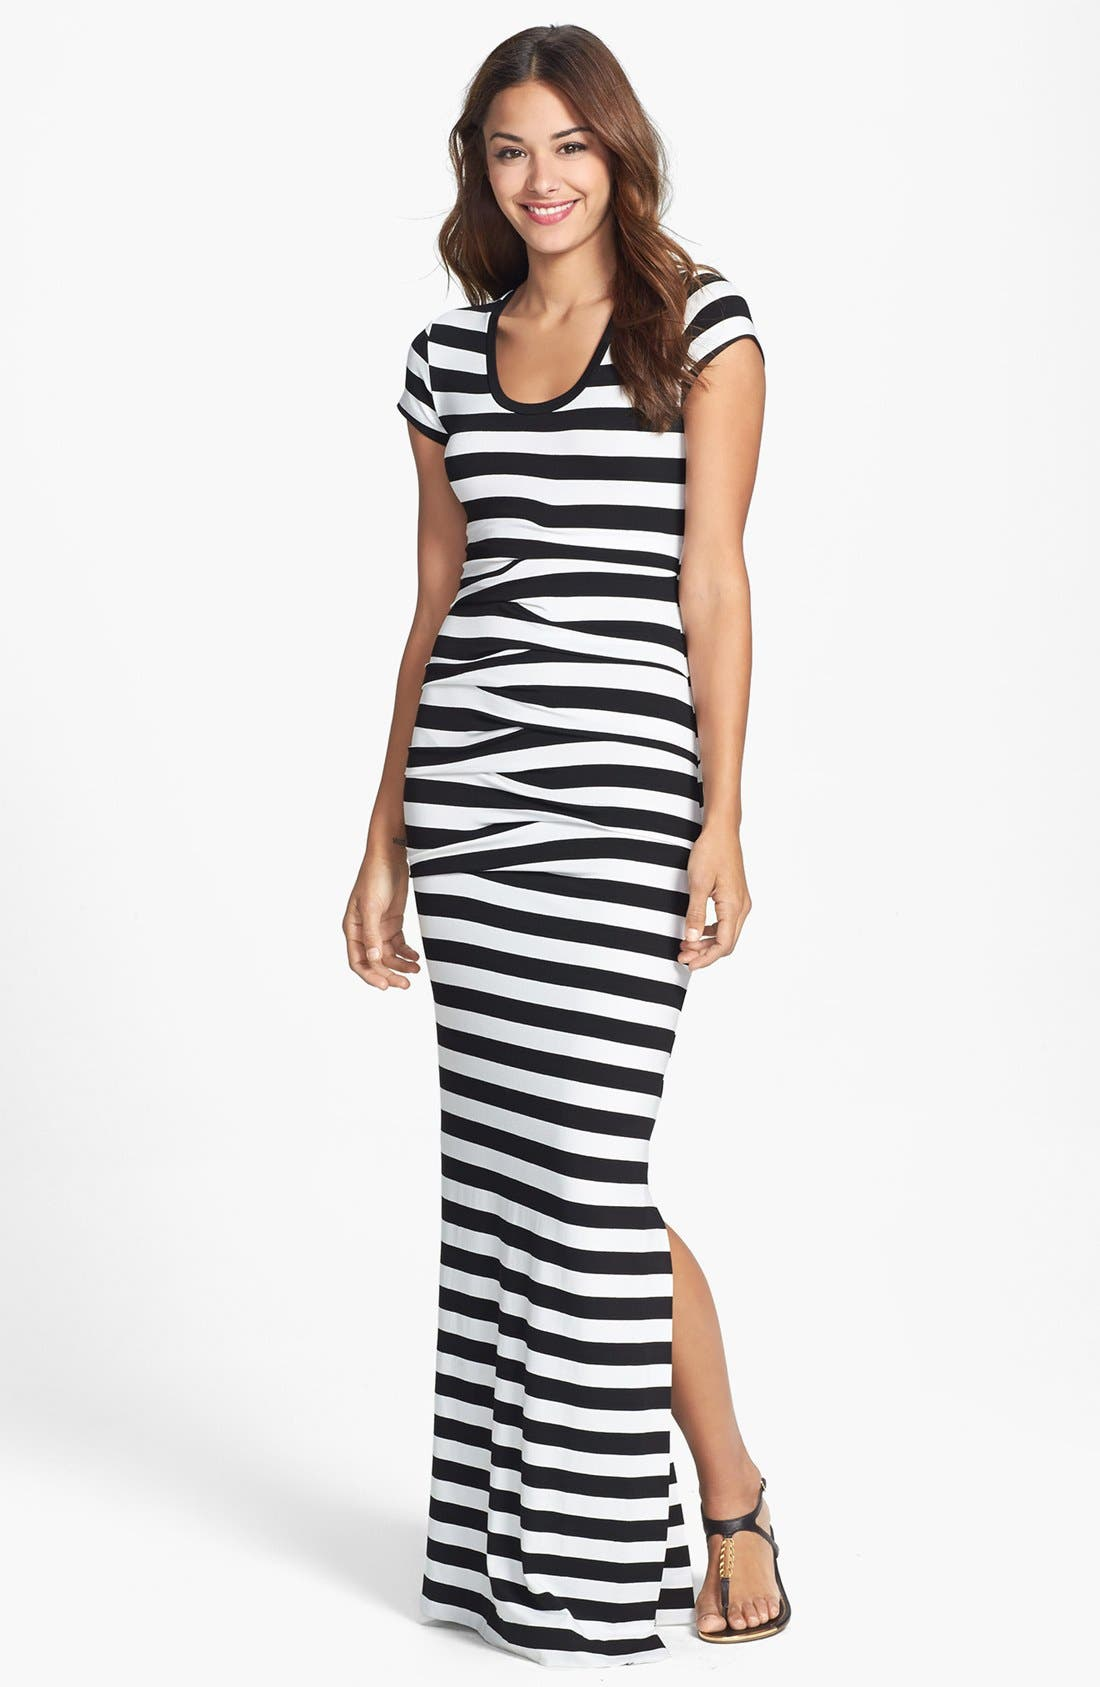 Alternate Image 1 Selected - Nicole Miller 'Vanessa' Stripe Tidal Pleat Jersey Maxi Dress